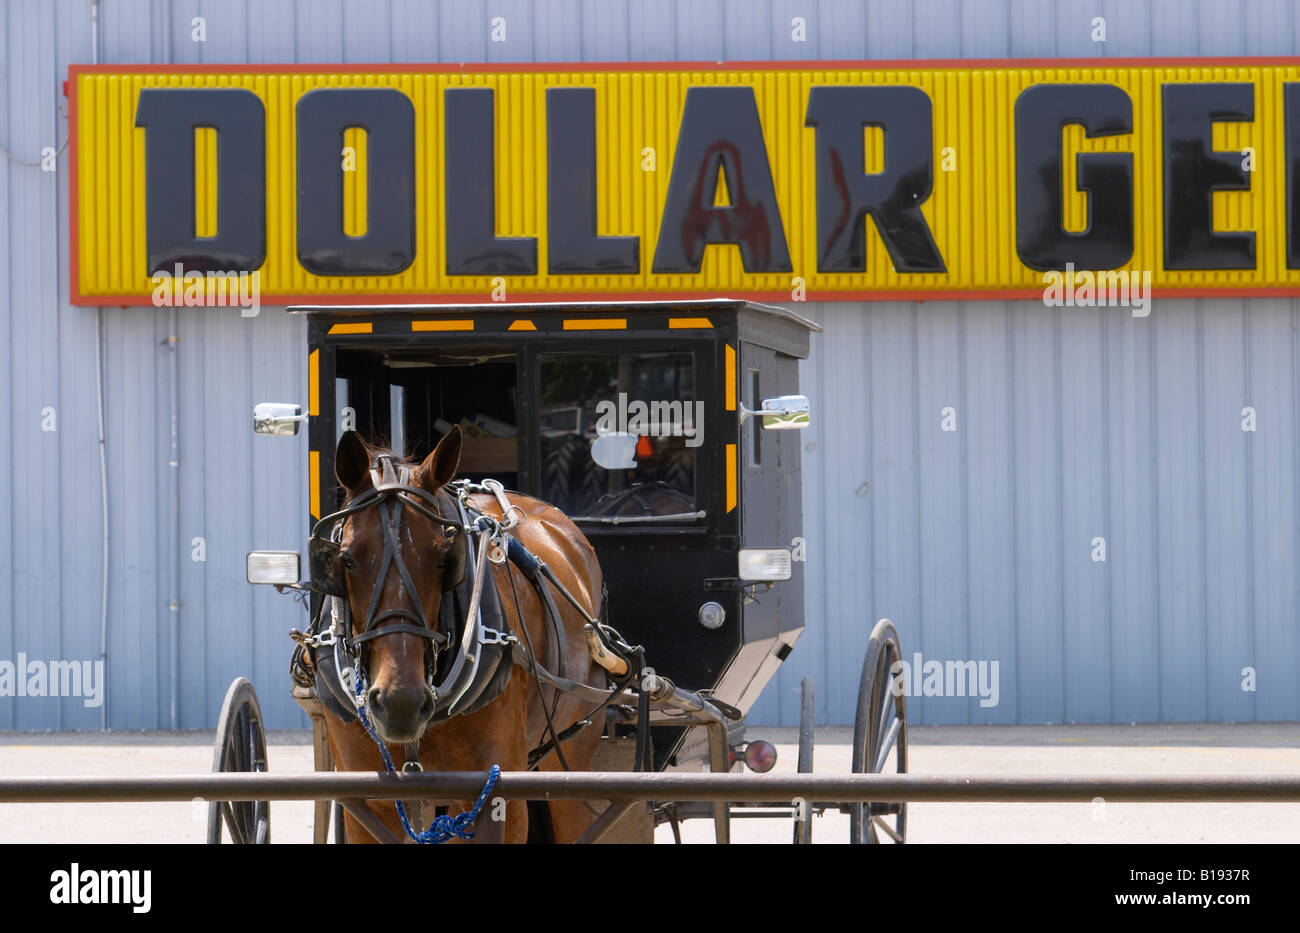 ILLINOIS Arthur Amish horse and buggy tied to hitching post outside Dollar General store - Stock Image